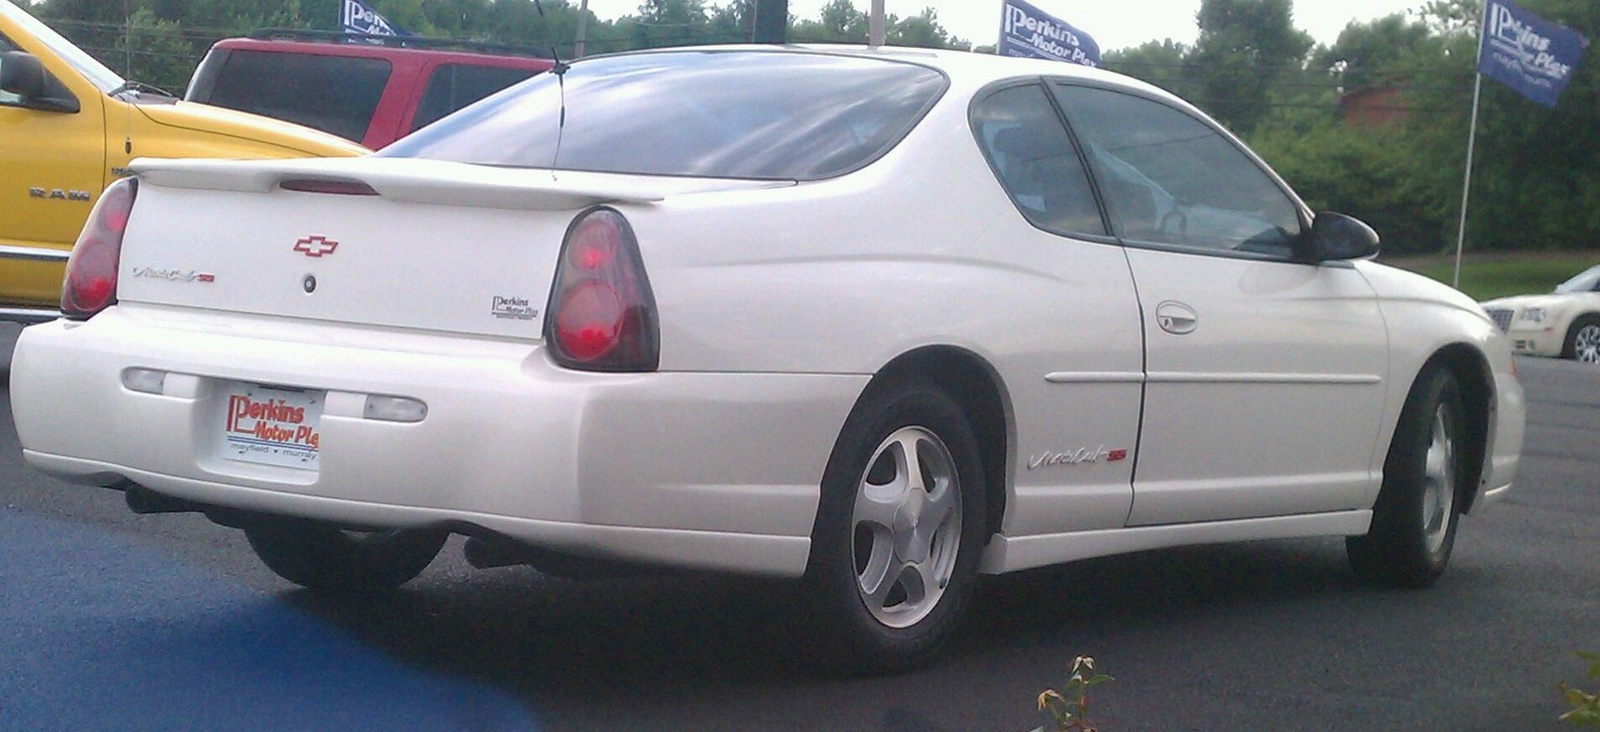 2001 Chevrolet Monte Carlo SS - Pictures - Picture of 2001 Chevrolet ...